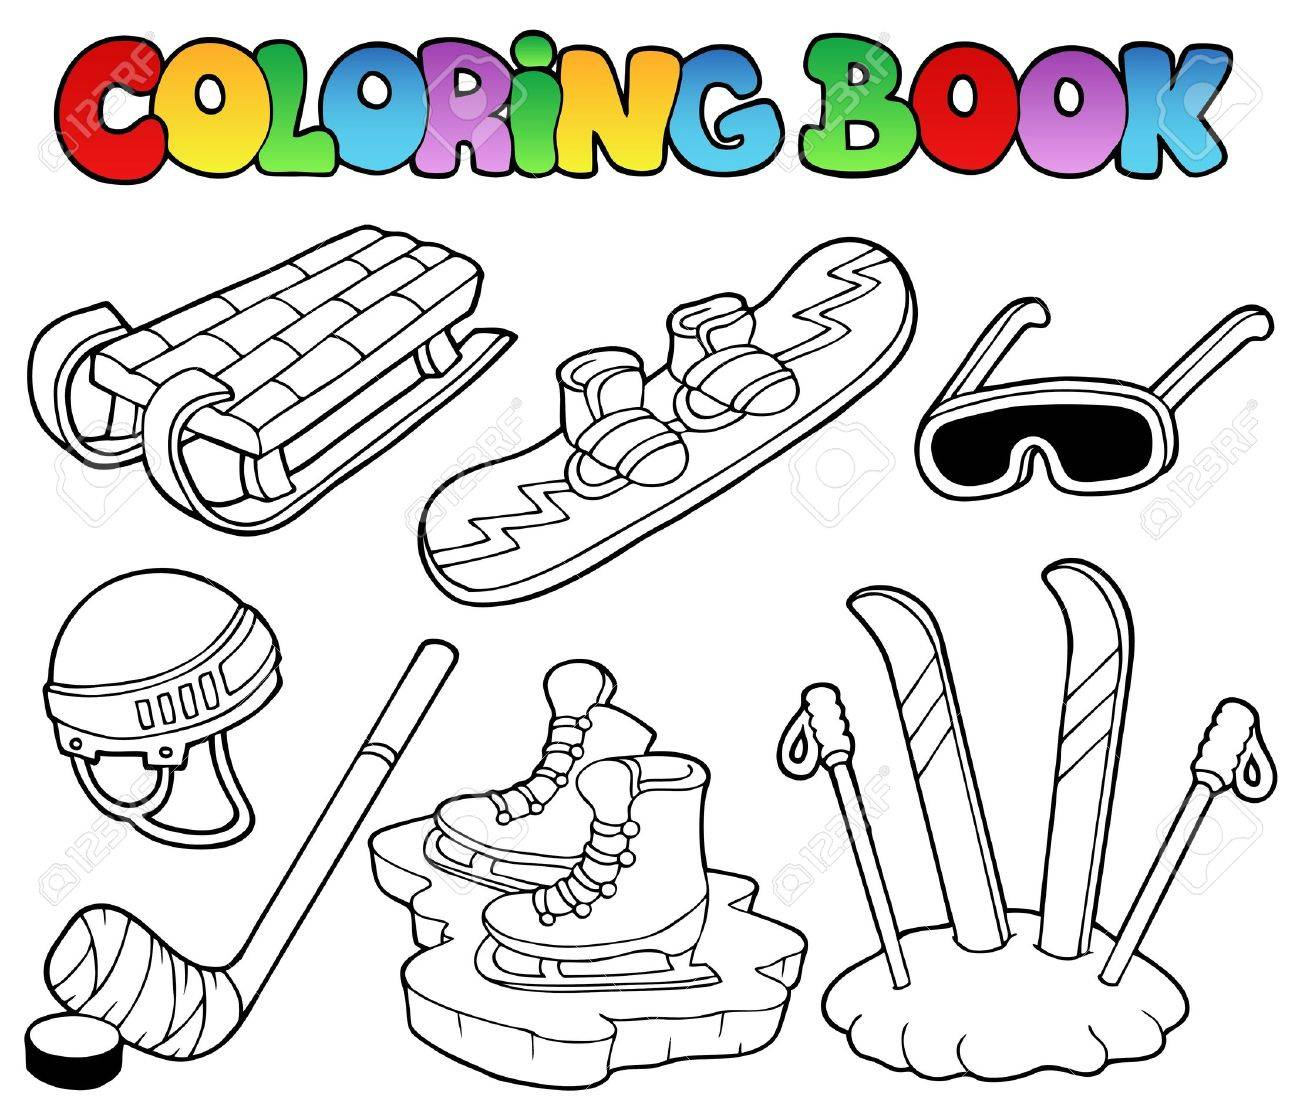 Coloring Book Winter Sports Gear - Vector Illustration. Royalty ...